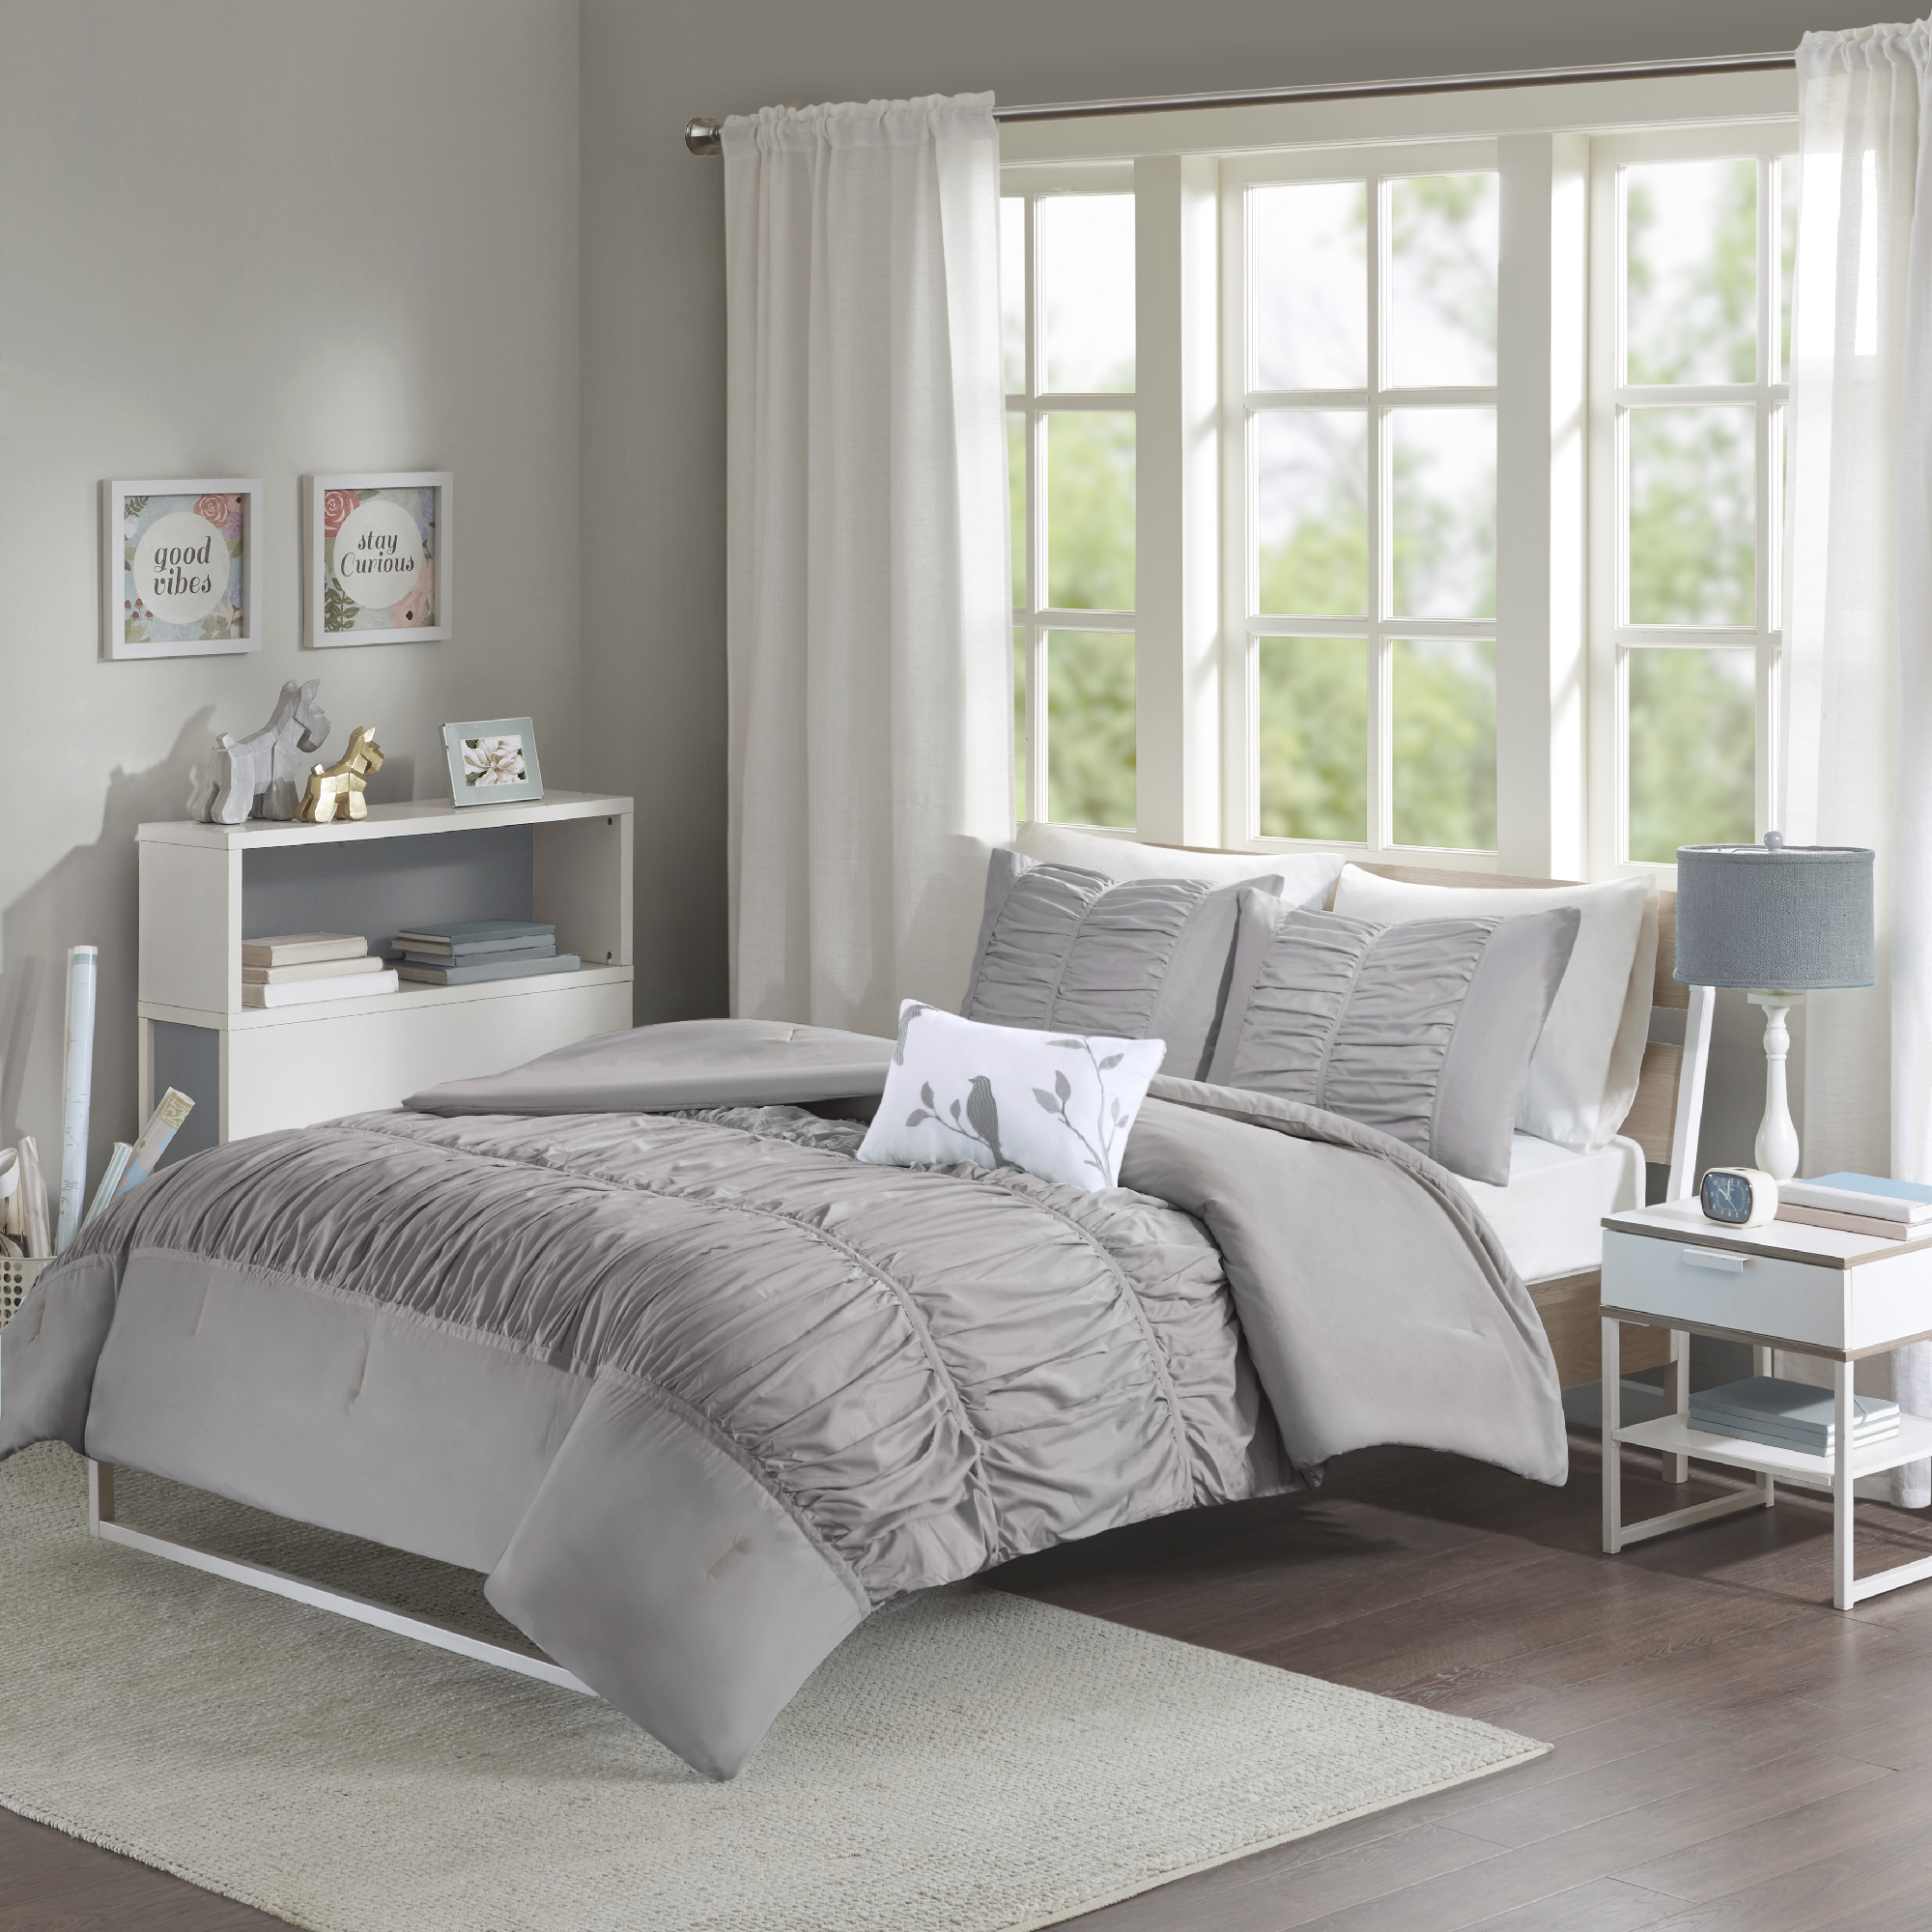 Home Essence Teen Haley Printed Comforter Bedding Set